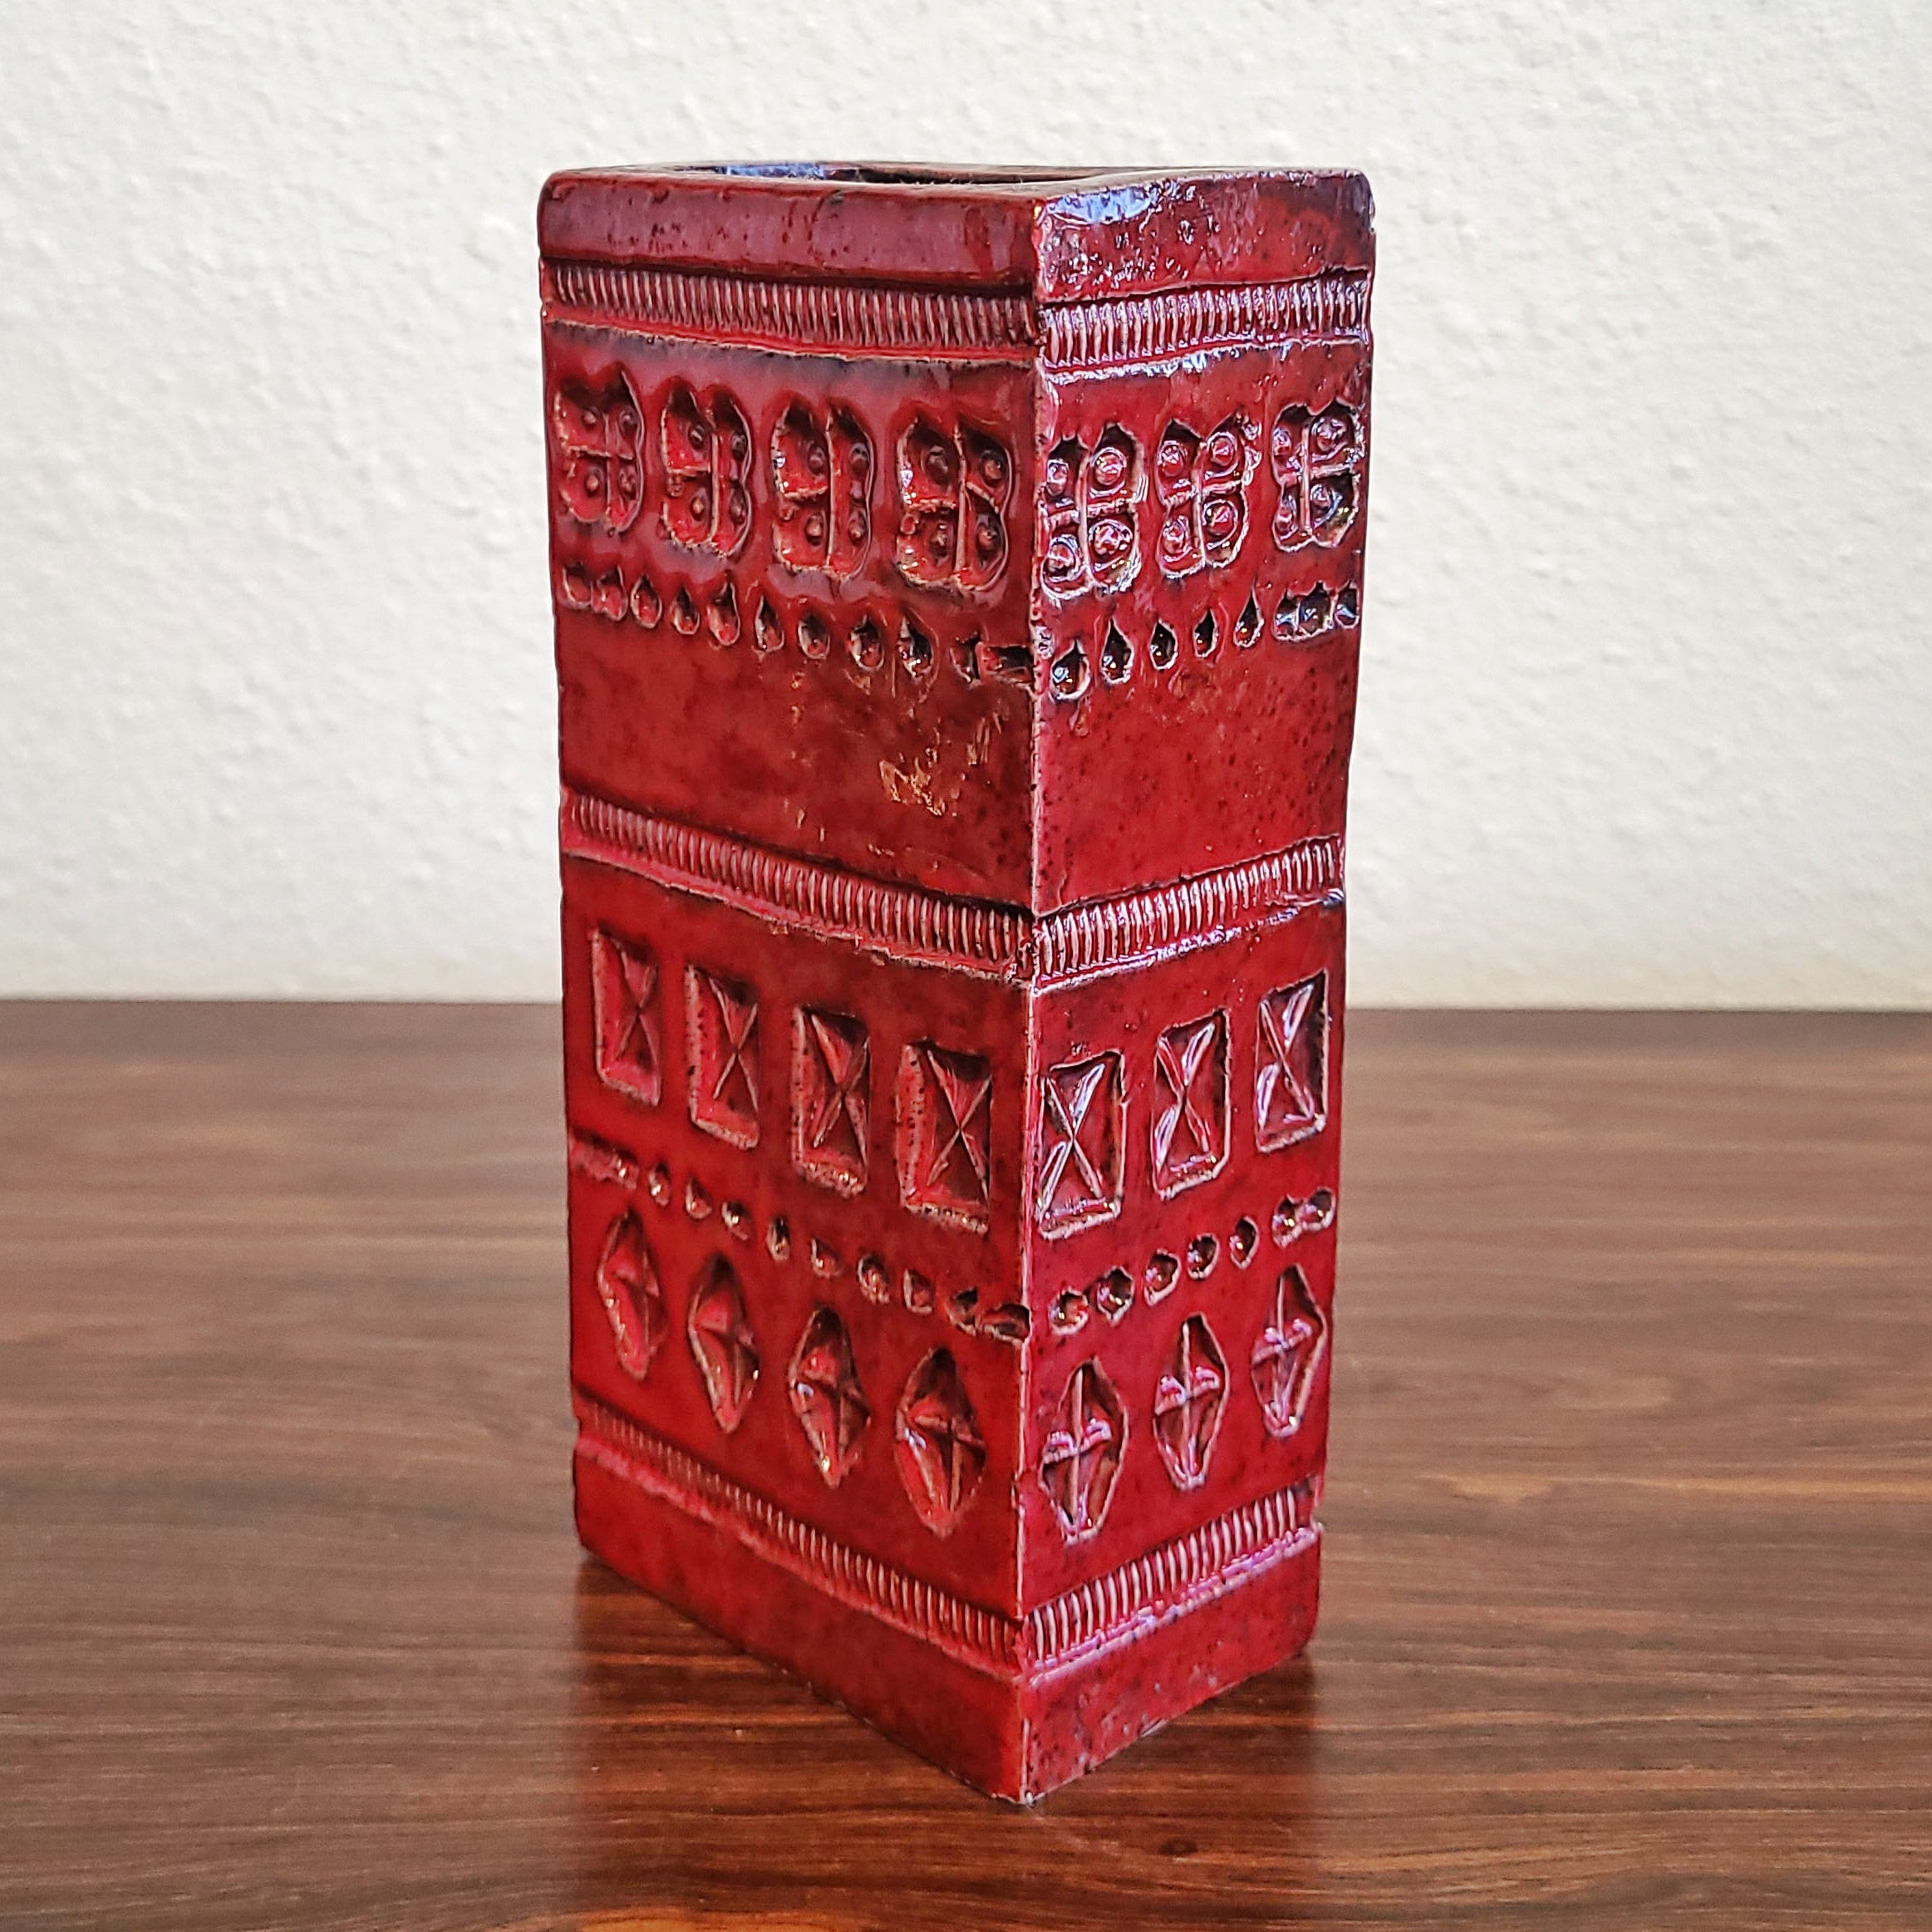 ALDO LONDI 'RIMINI RED' BLOCK VASE FOR BITOSSI (1960s)